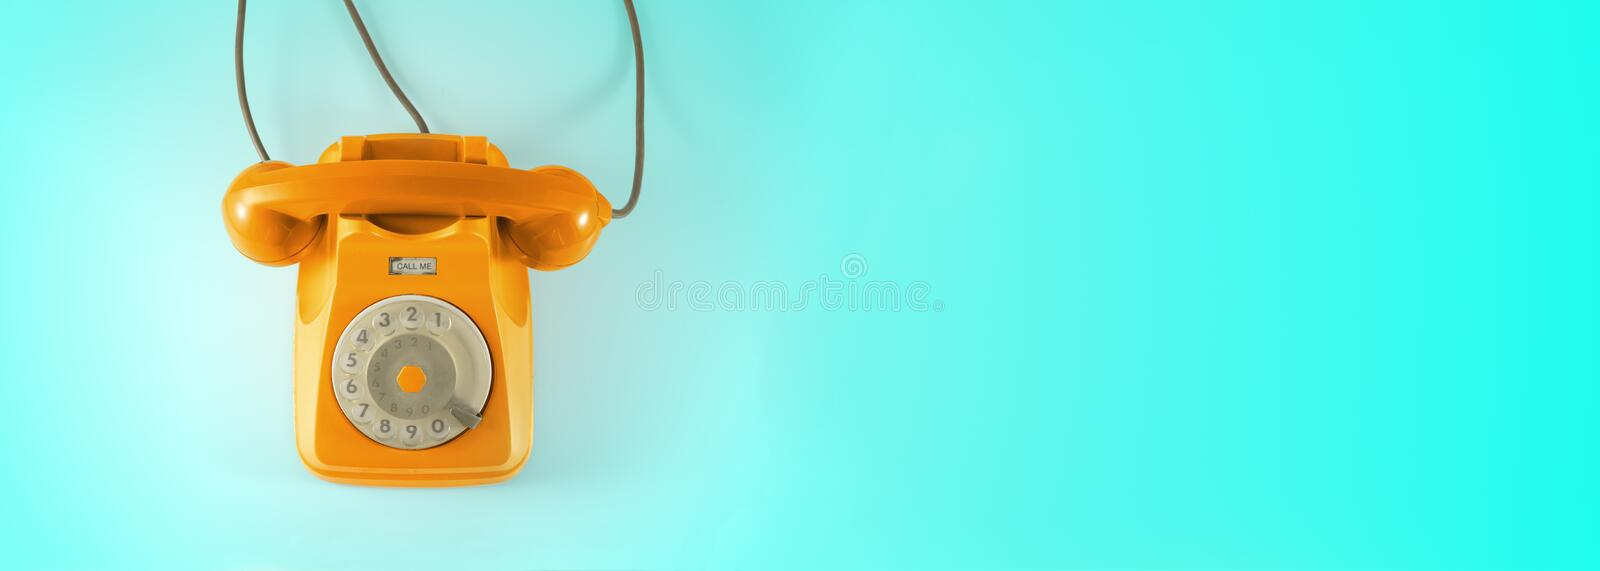 A vintage dial telephone with blue background. A orange vintage dial telephone with blue background royalty free stock image